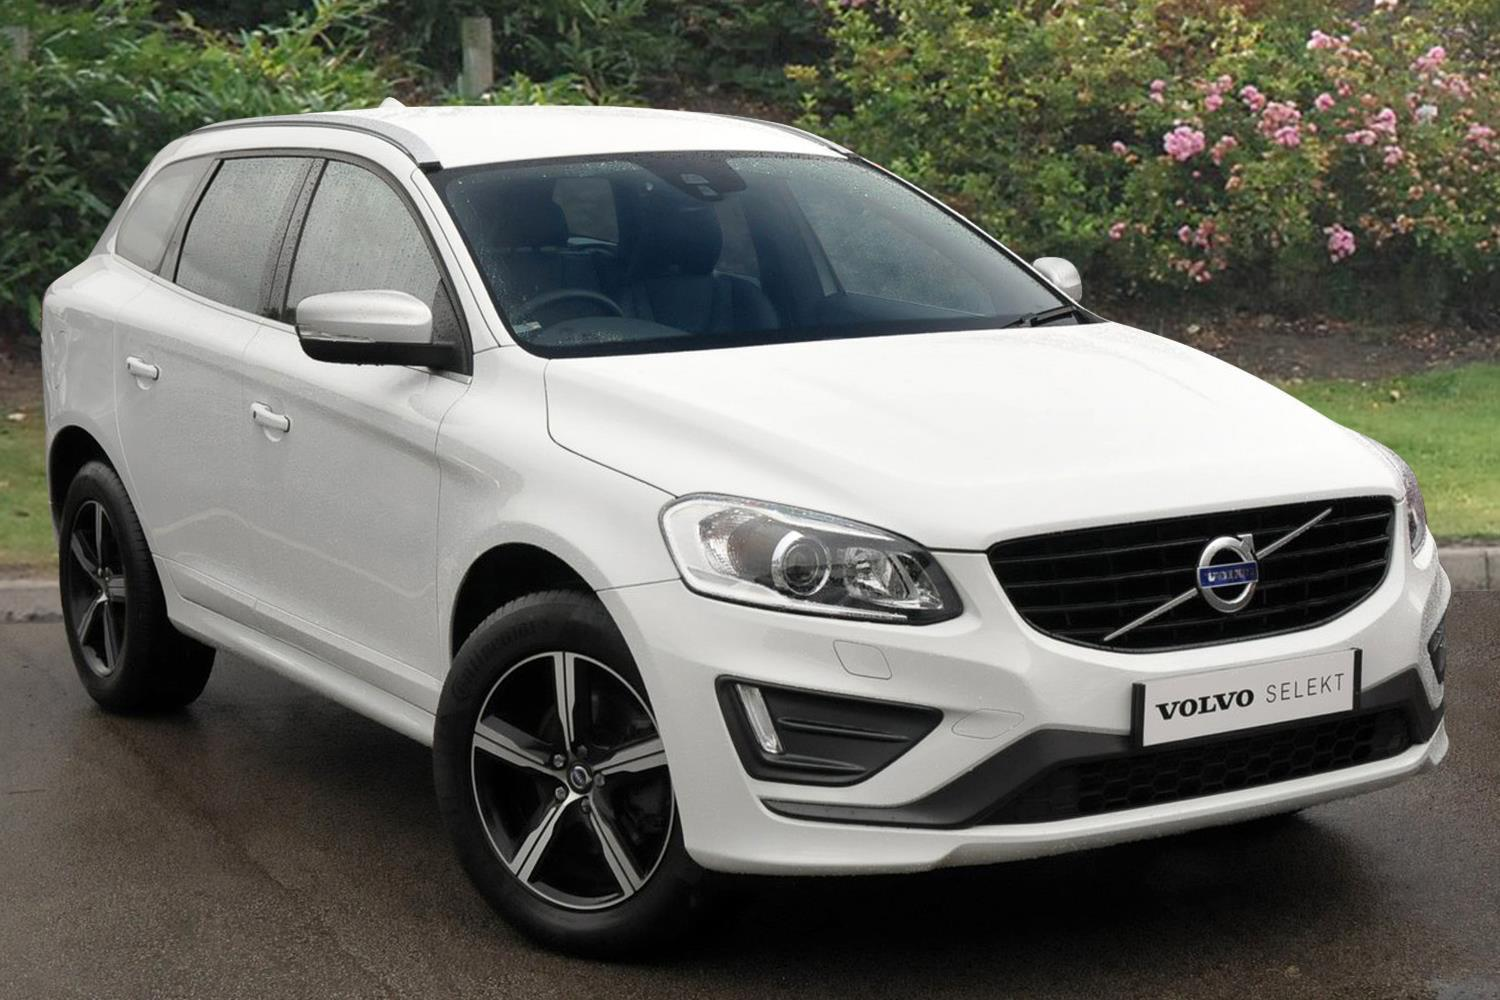 used volvo xc60 d4 190 r design lux nav 5dr awd. Black Bedroom Furniture Sets. Home Design Ideas